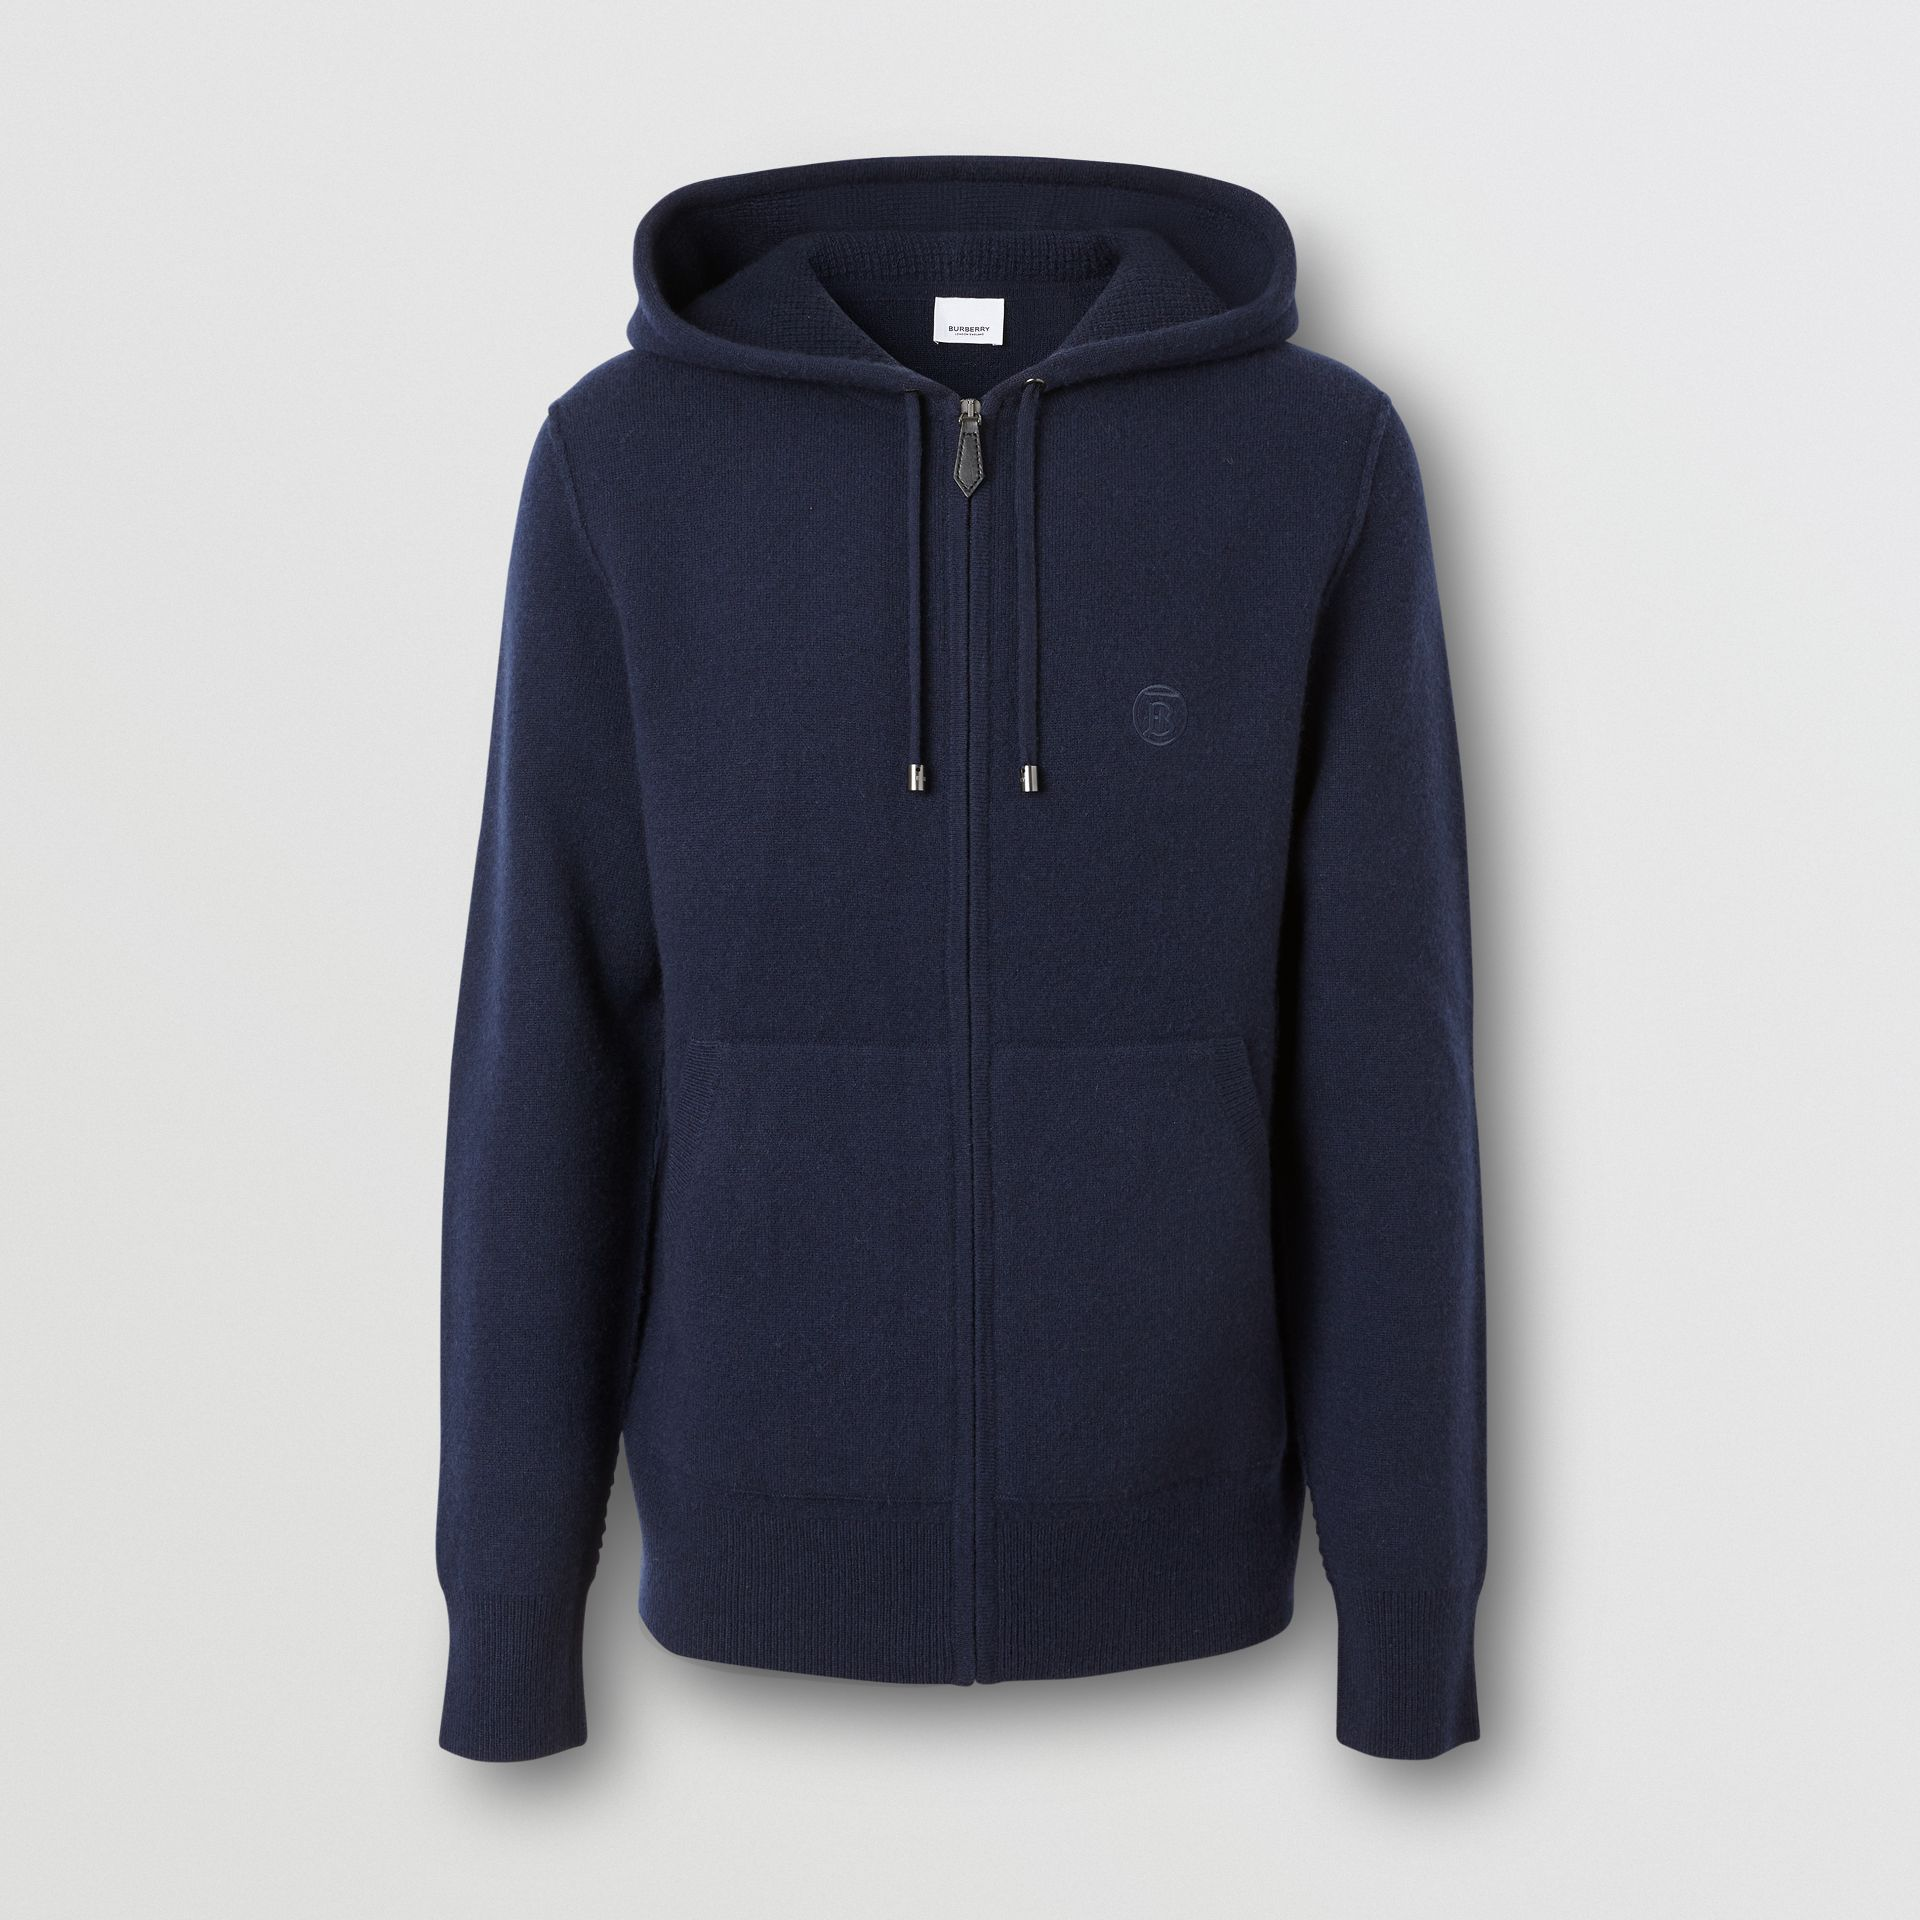 Monogram Motif Cashmere Blend Hooded Top in Navy - Men | Burberry - gallery image 3